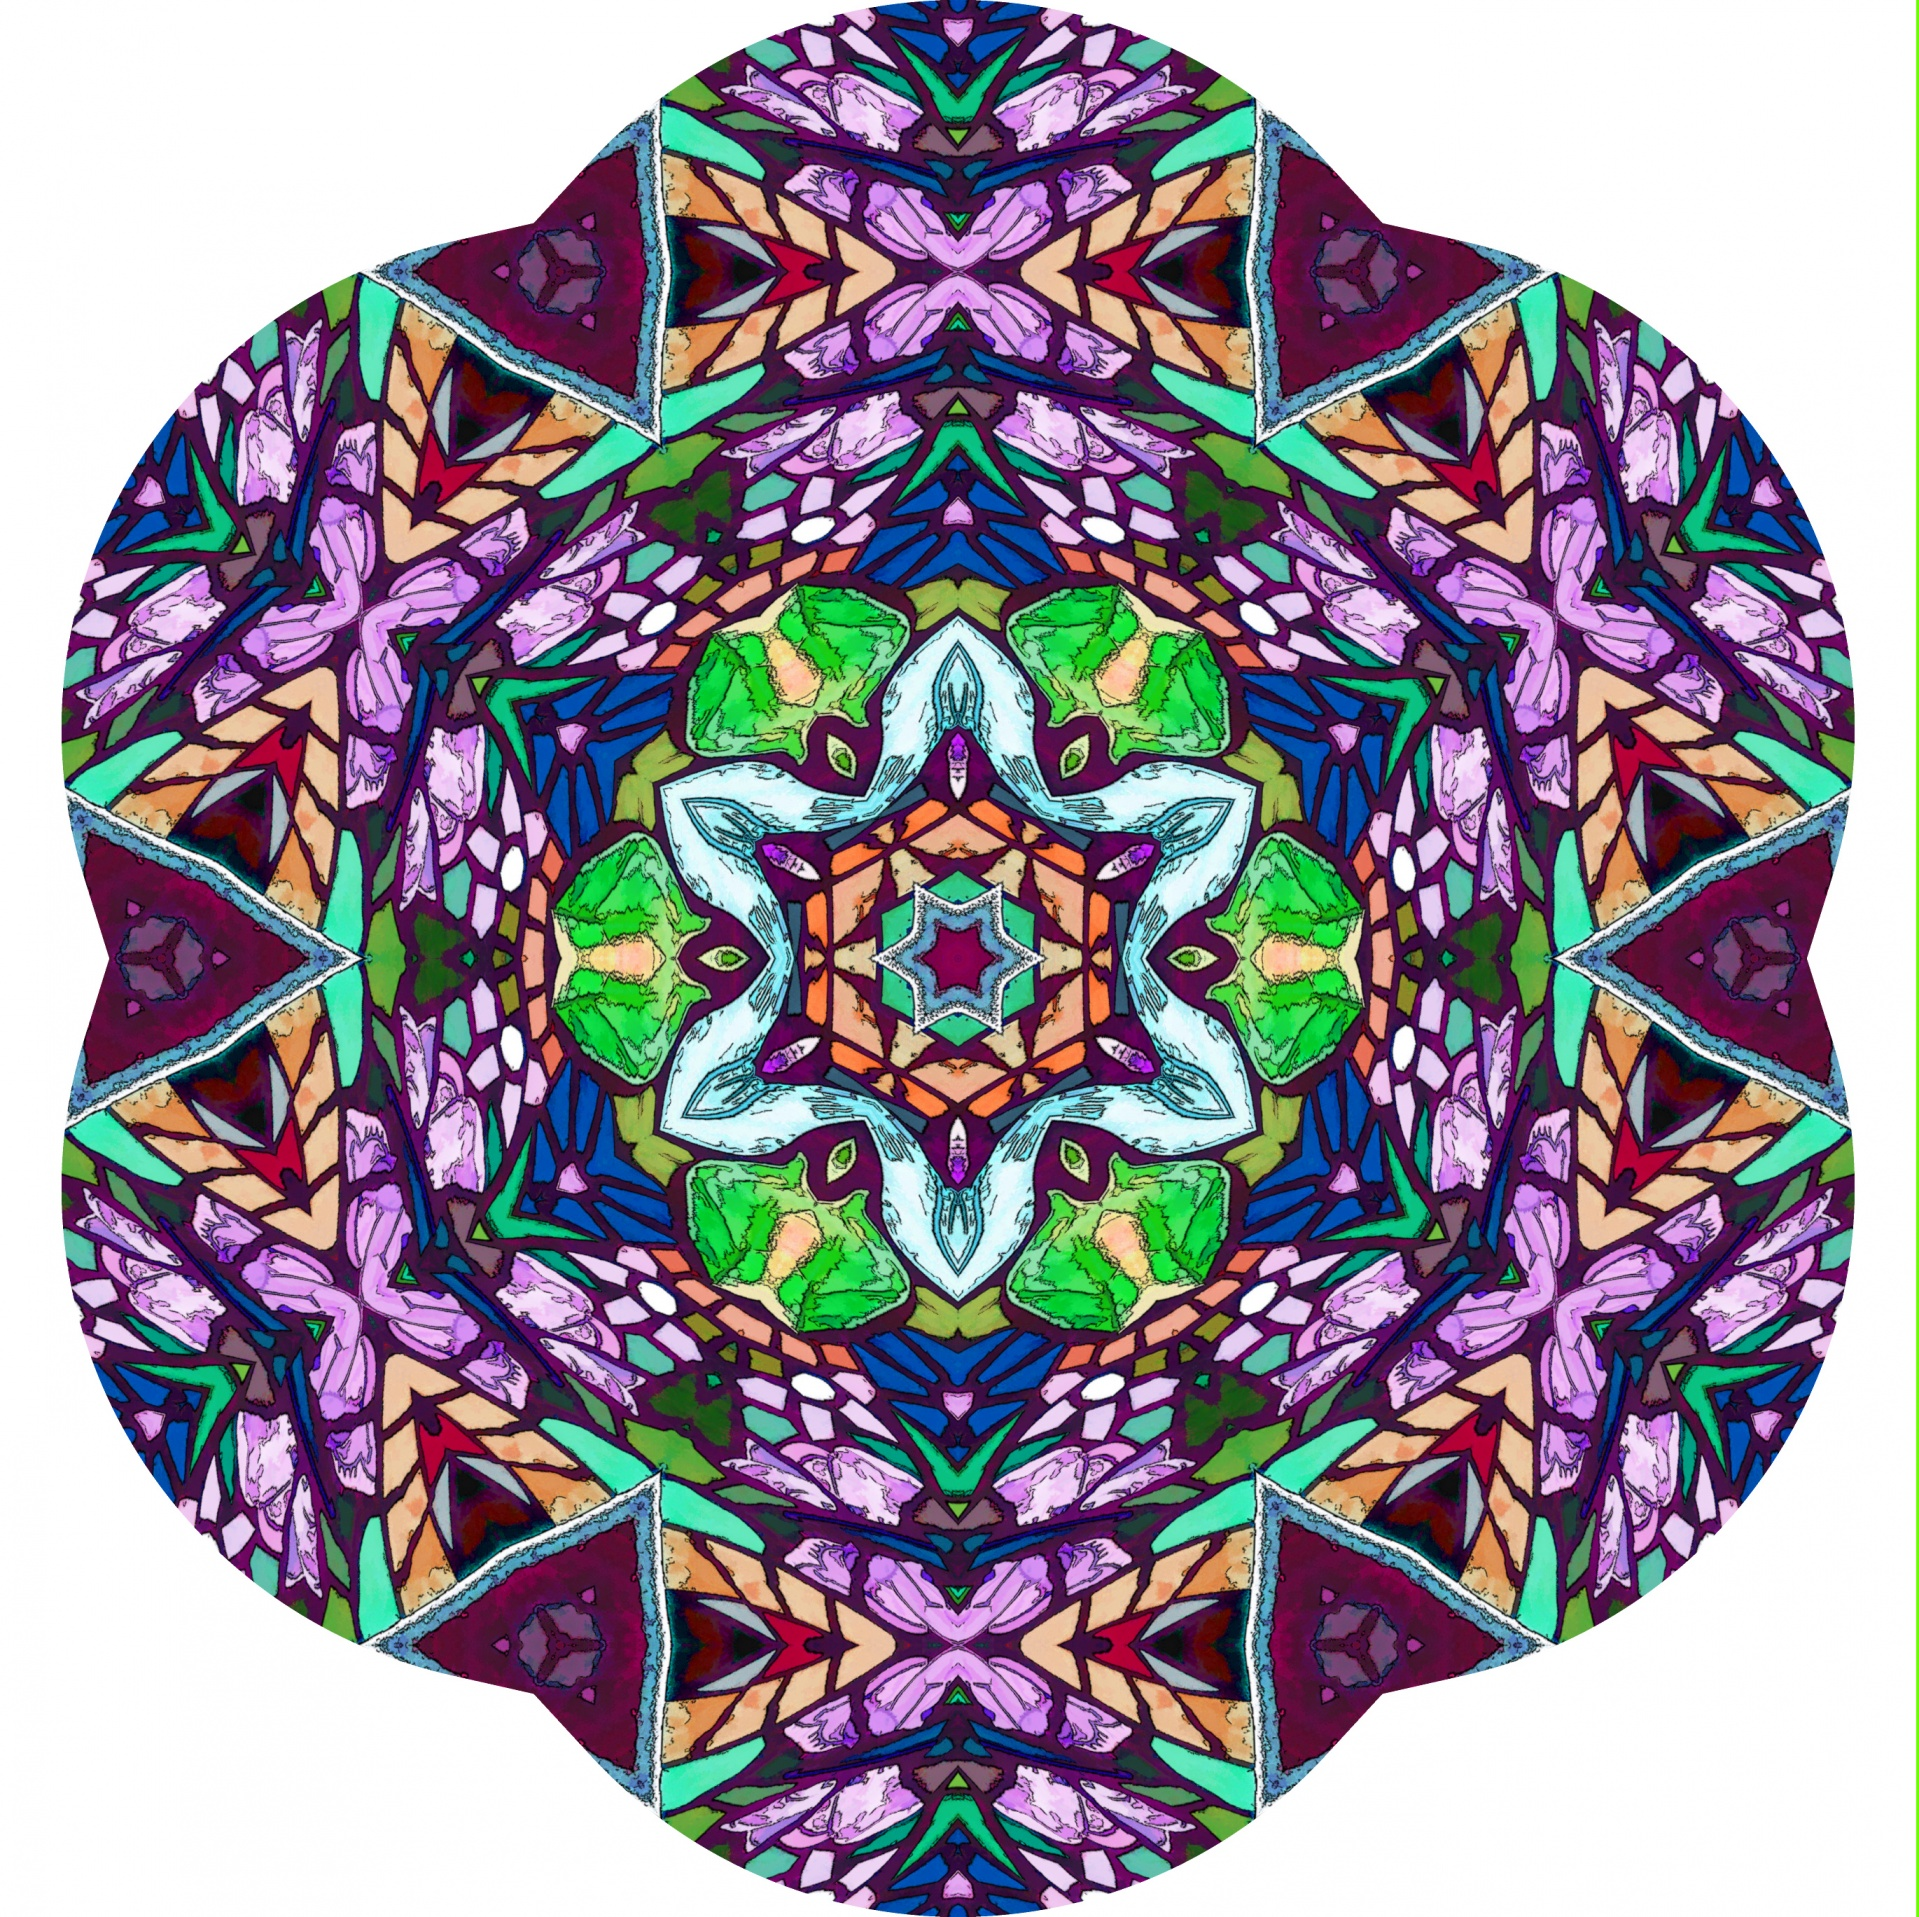 kaleidoscope-design-1524502261rGO